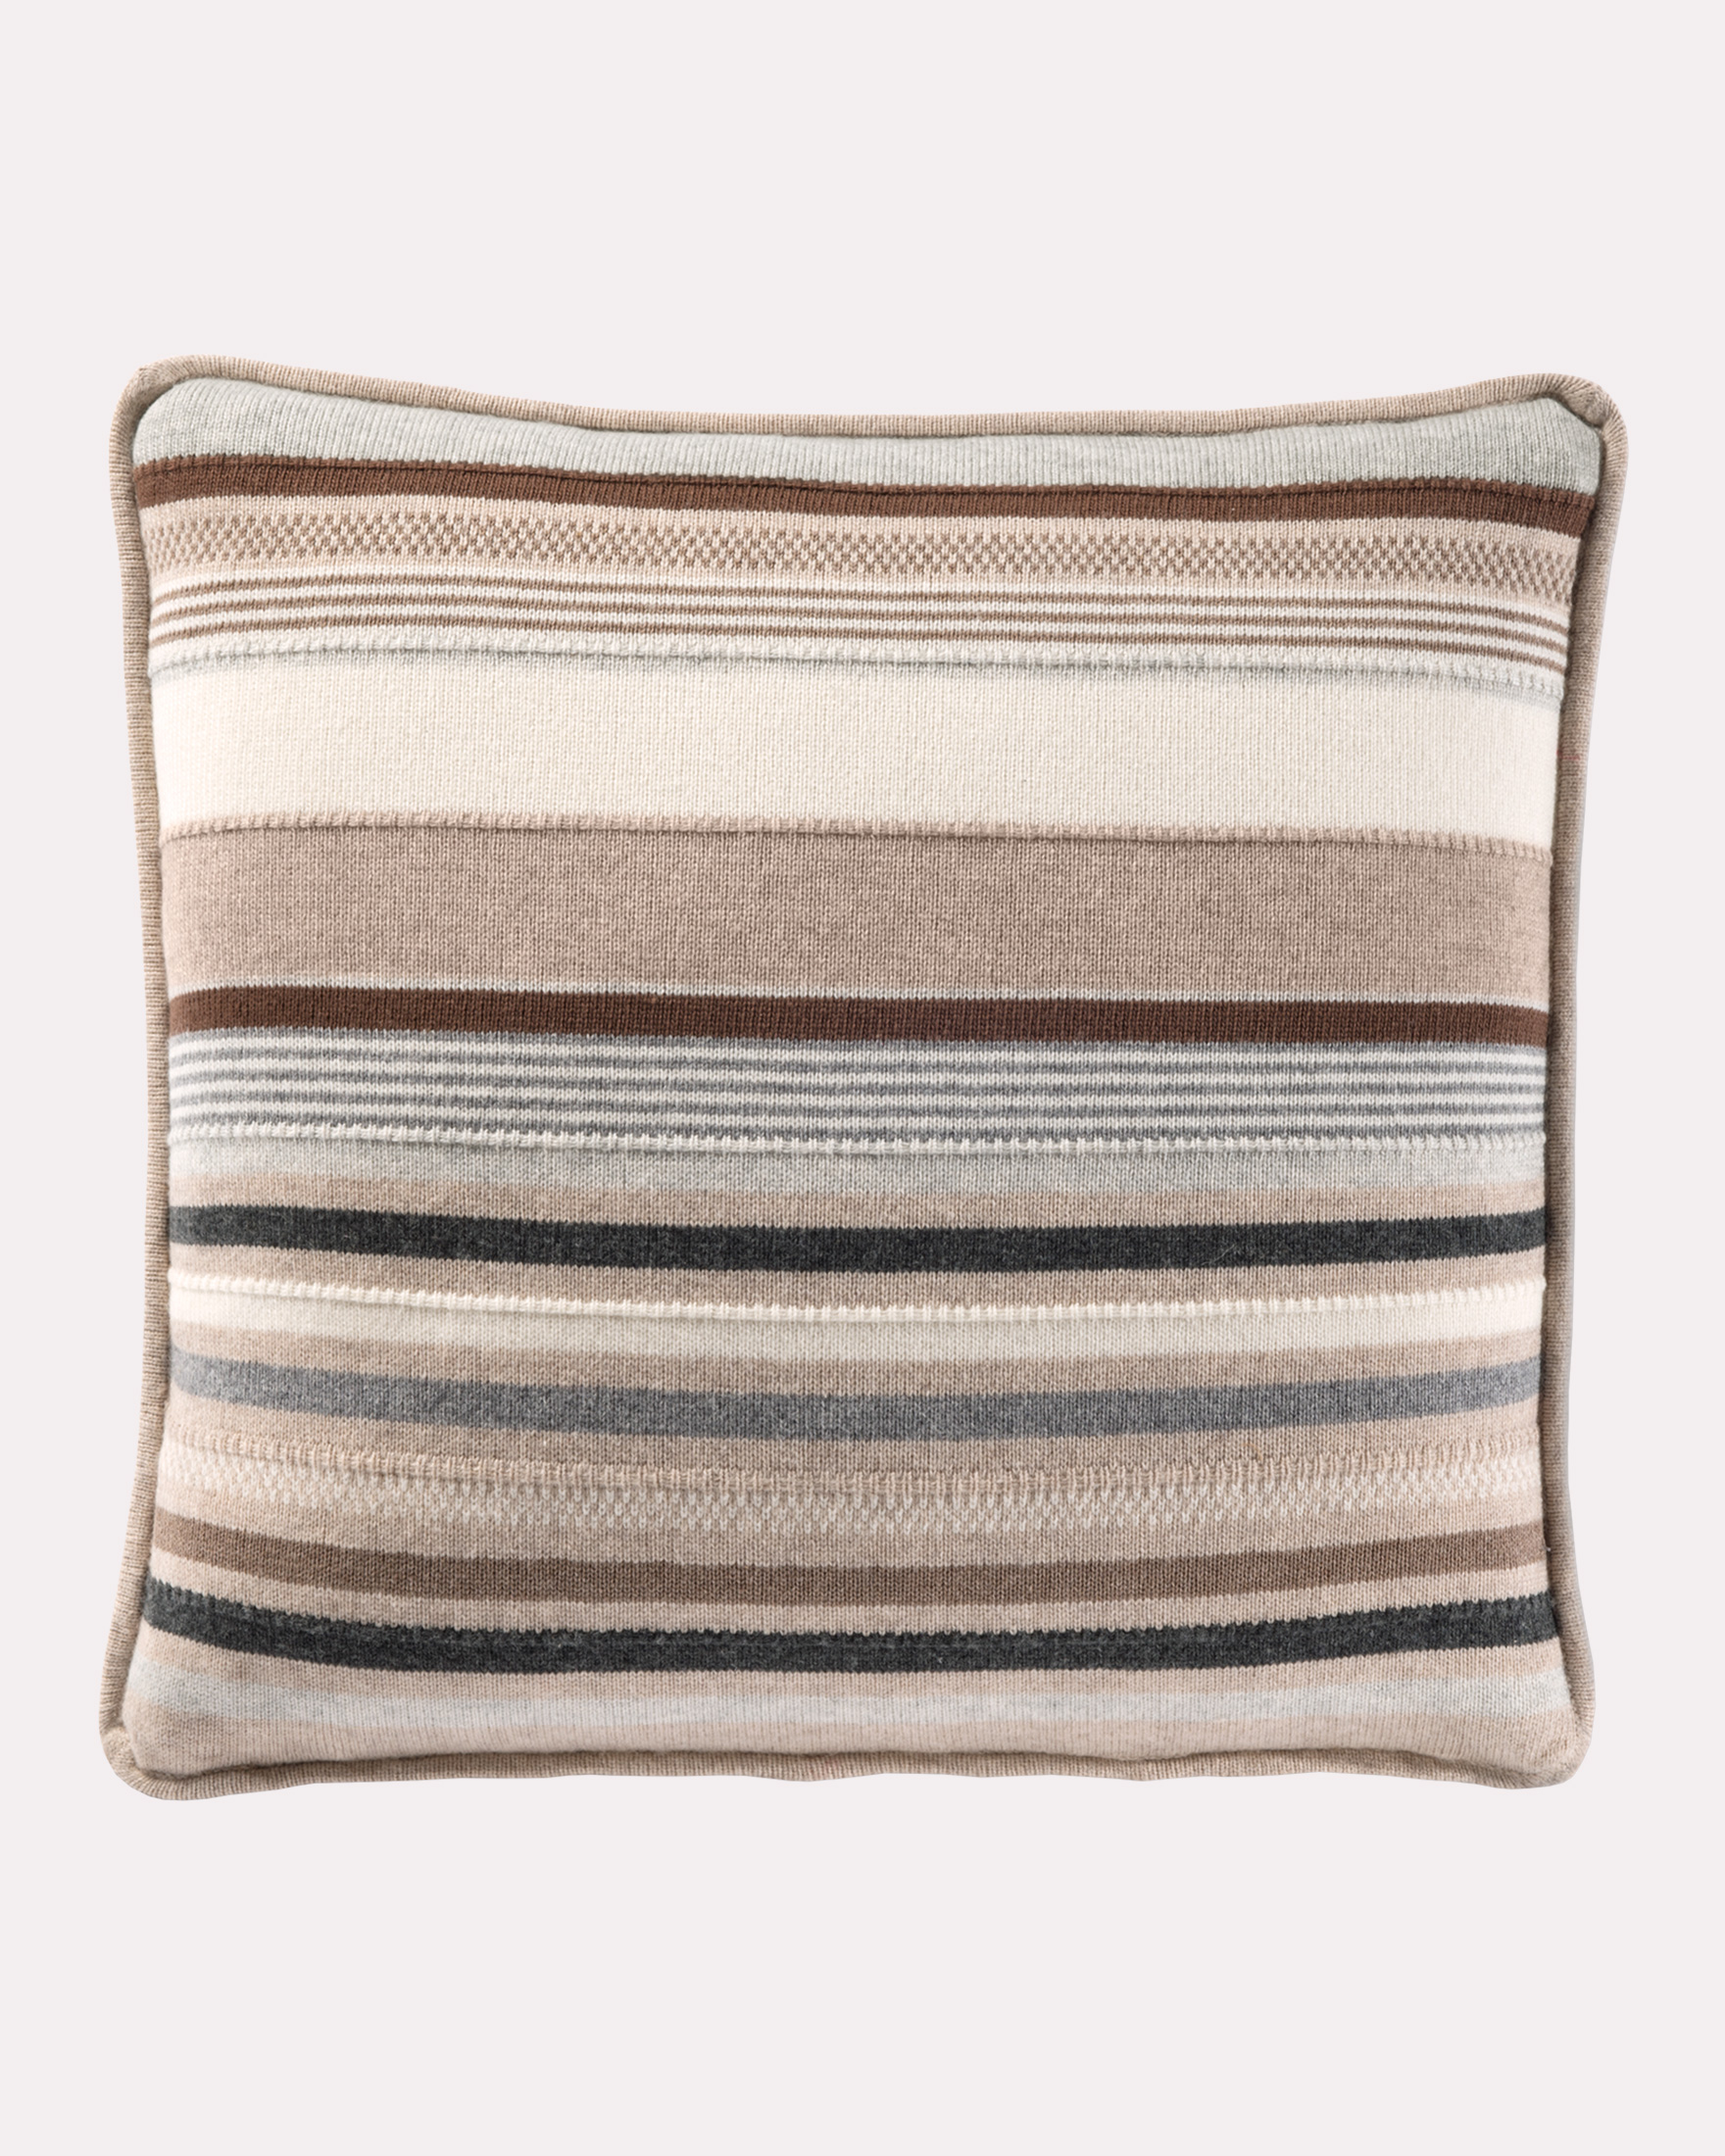 CHIMAYO KNIT PILLOW IN BEIGE MULTI